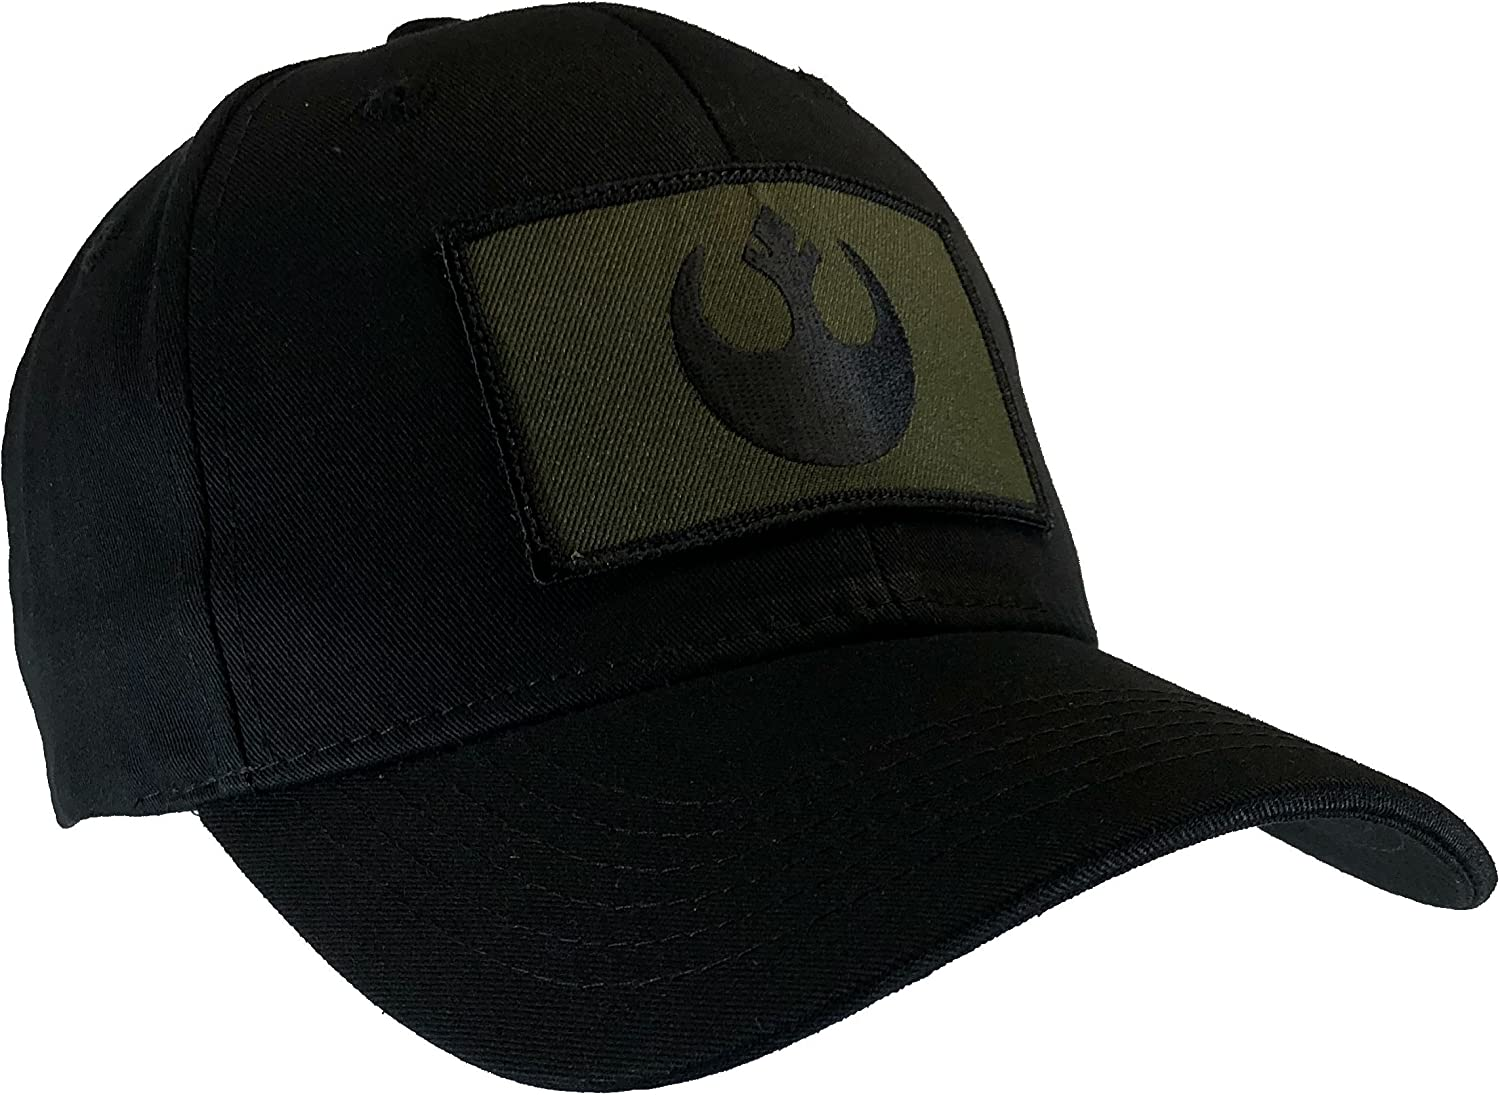 Star Wars Rebel Hat Black Ball Cap Cotton Structured OD Green /& Black Emblem